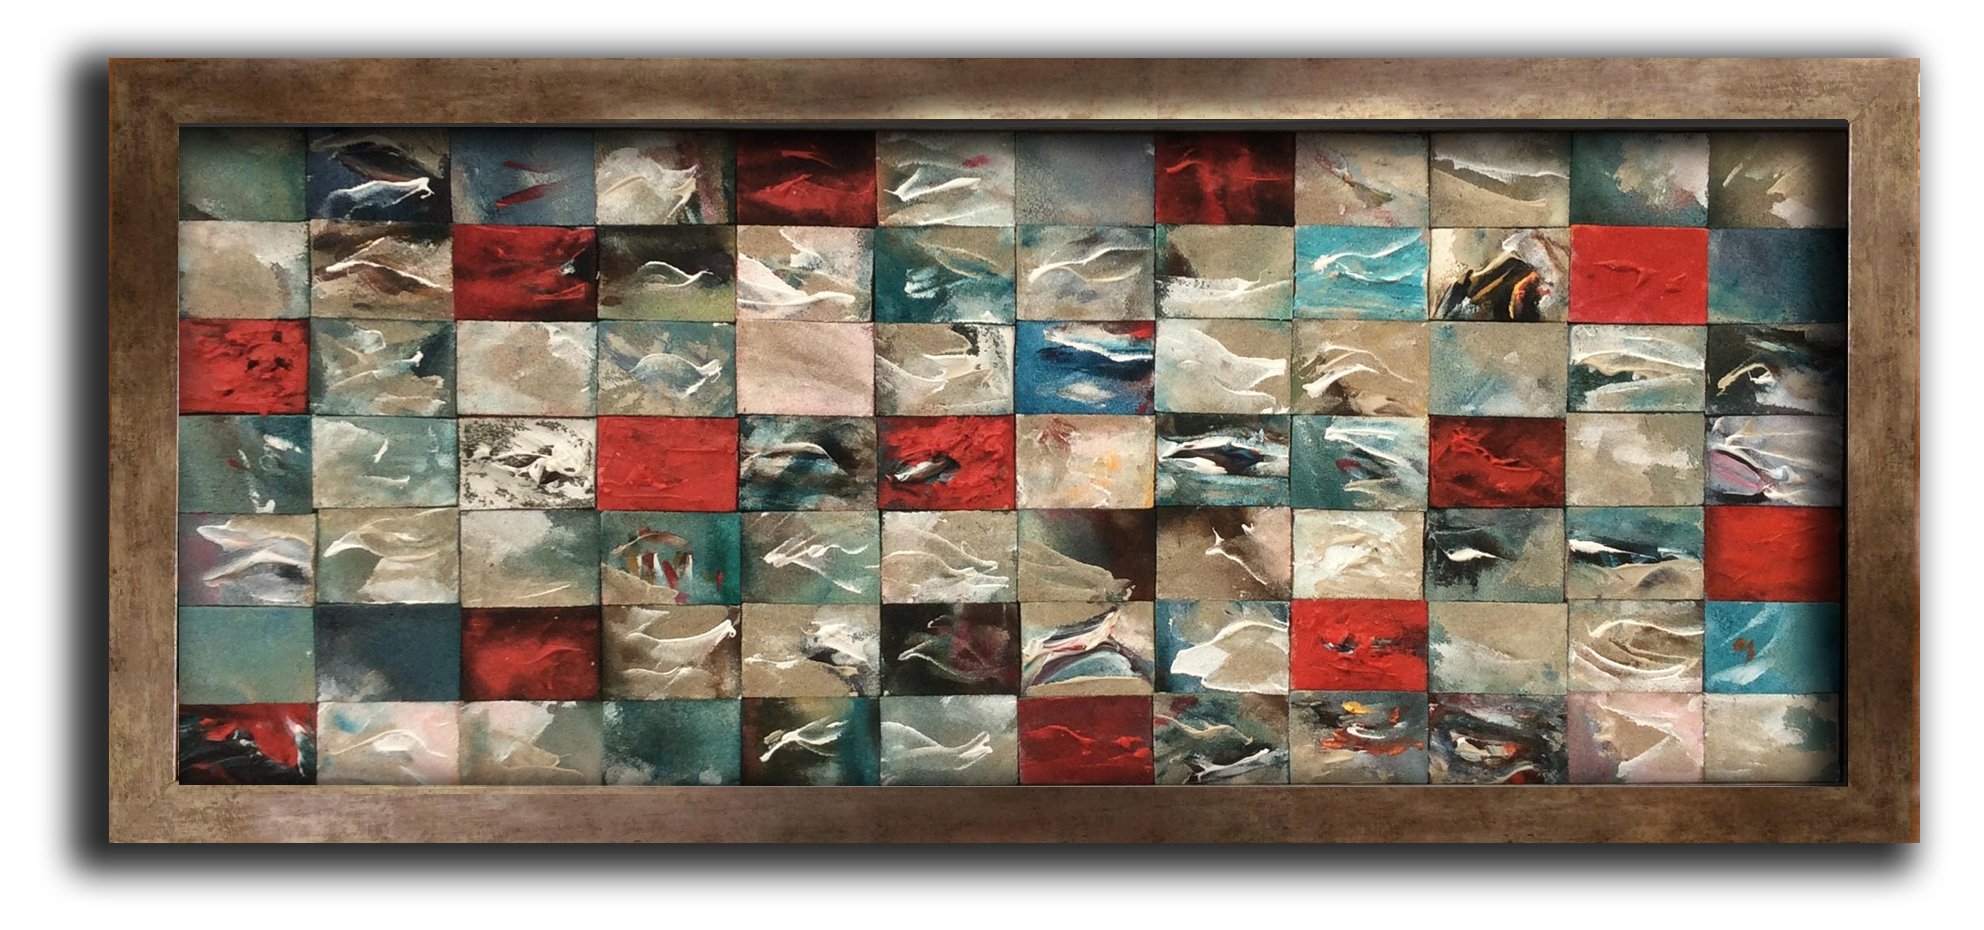 Echoes of the Sea Mikro-Compo II 105 x 46 cm £750